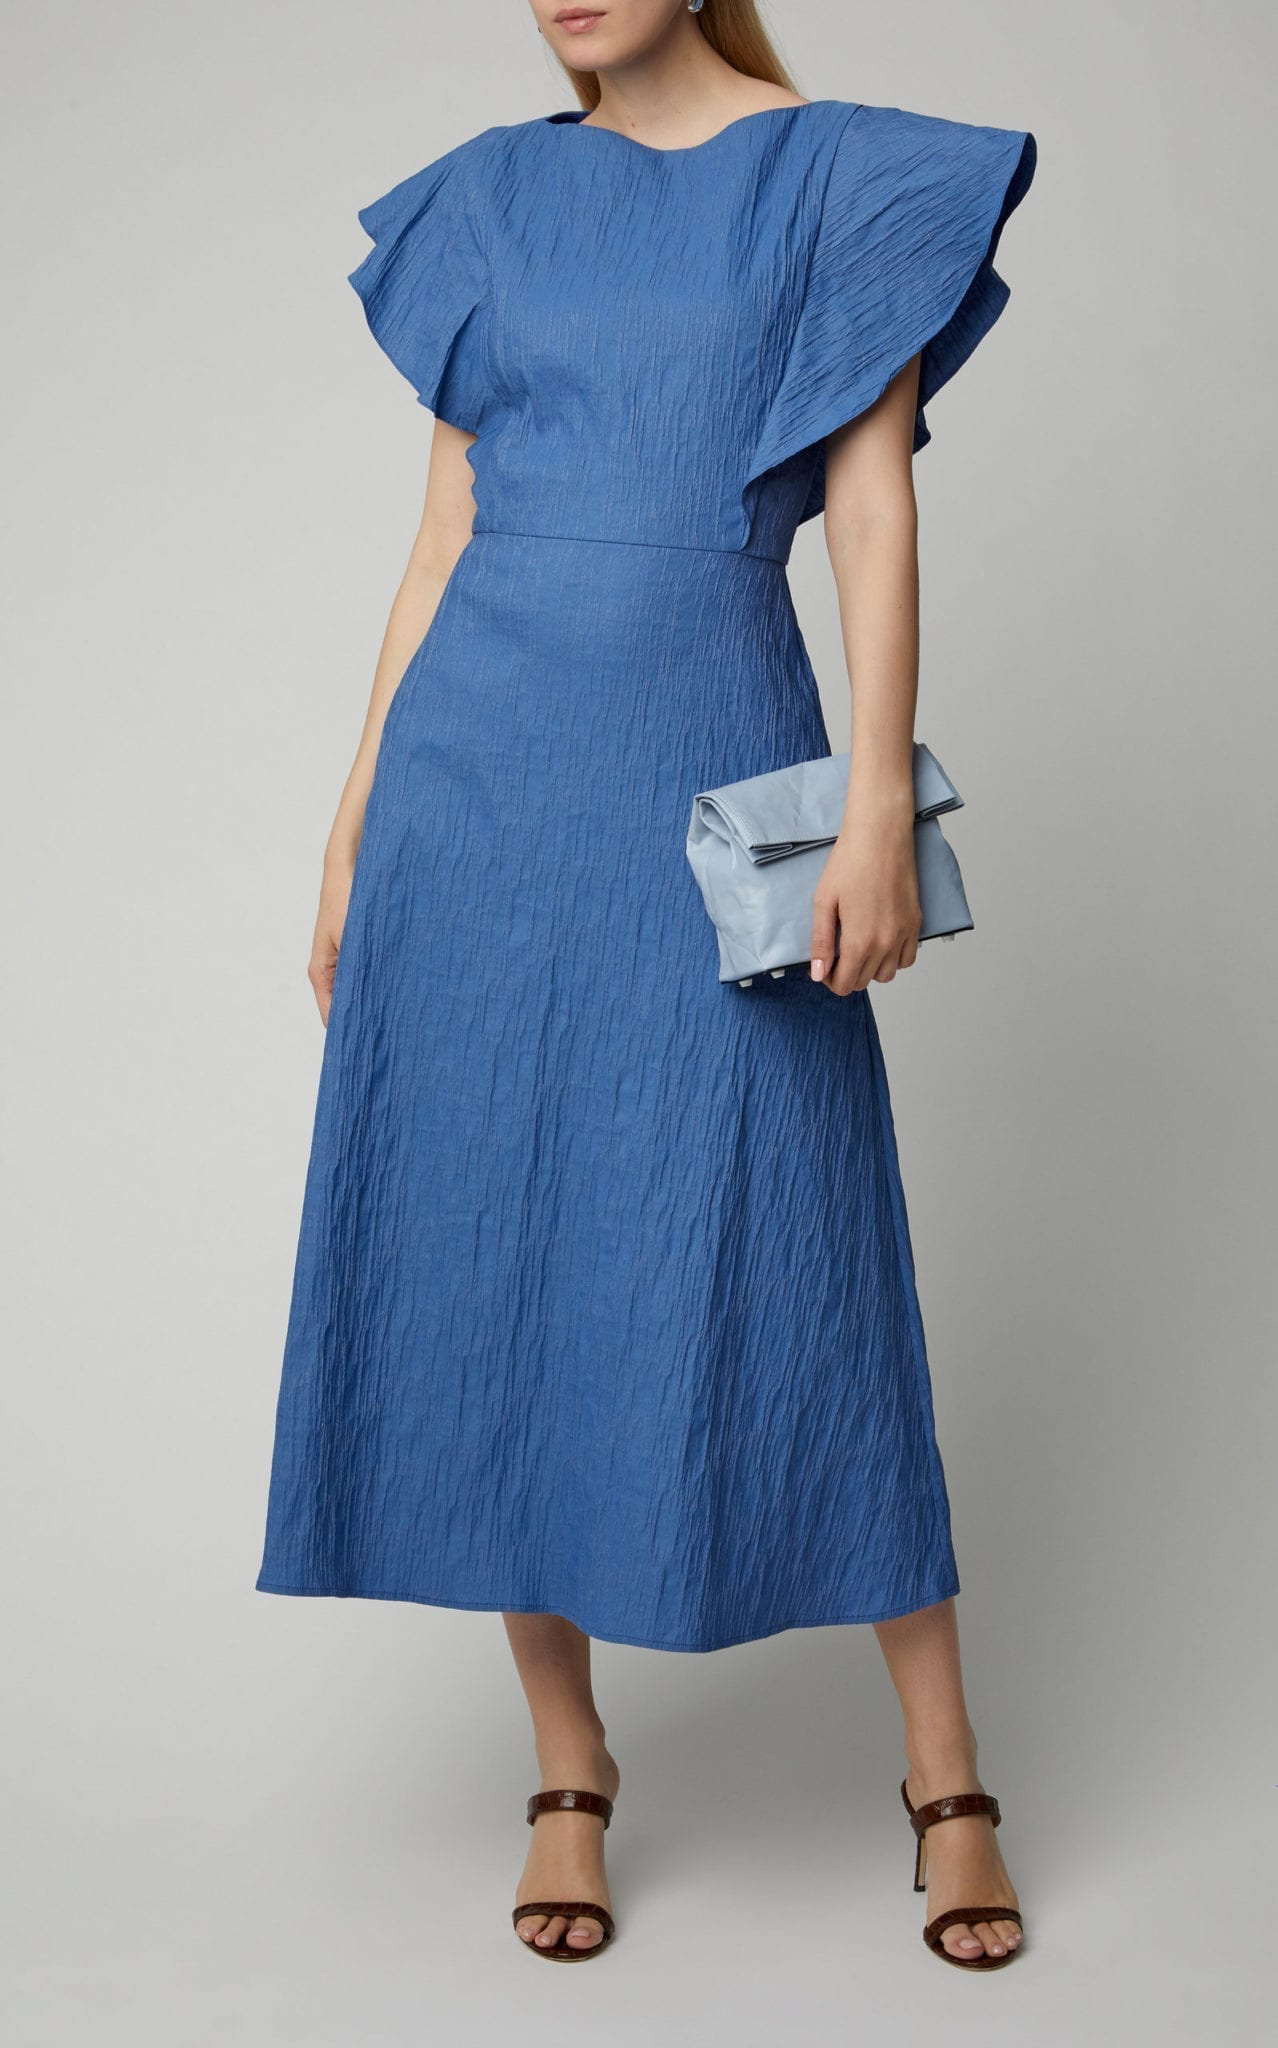 ANNA QUAN Zara Cotton-Blend Midi Dress